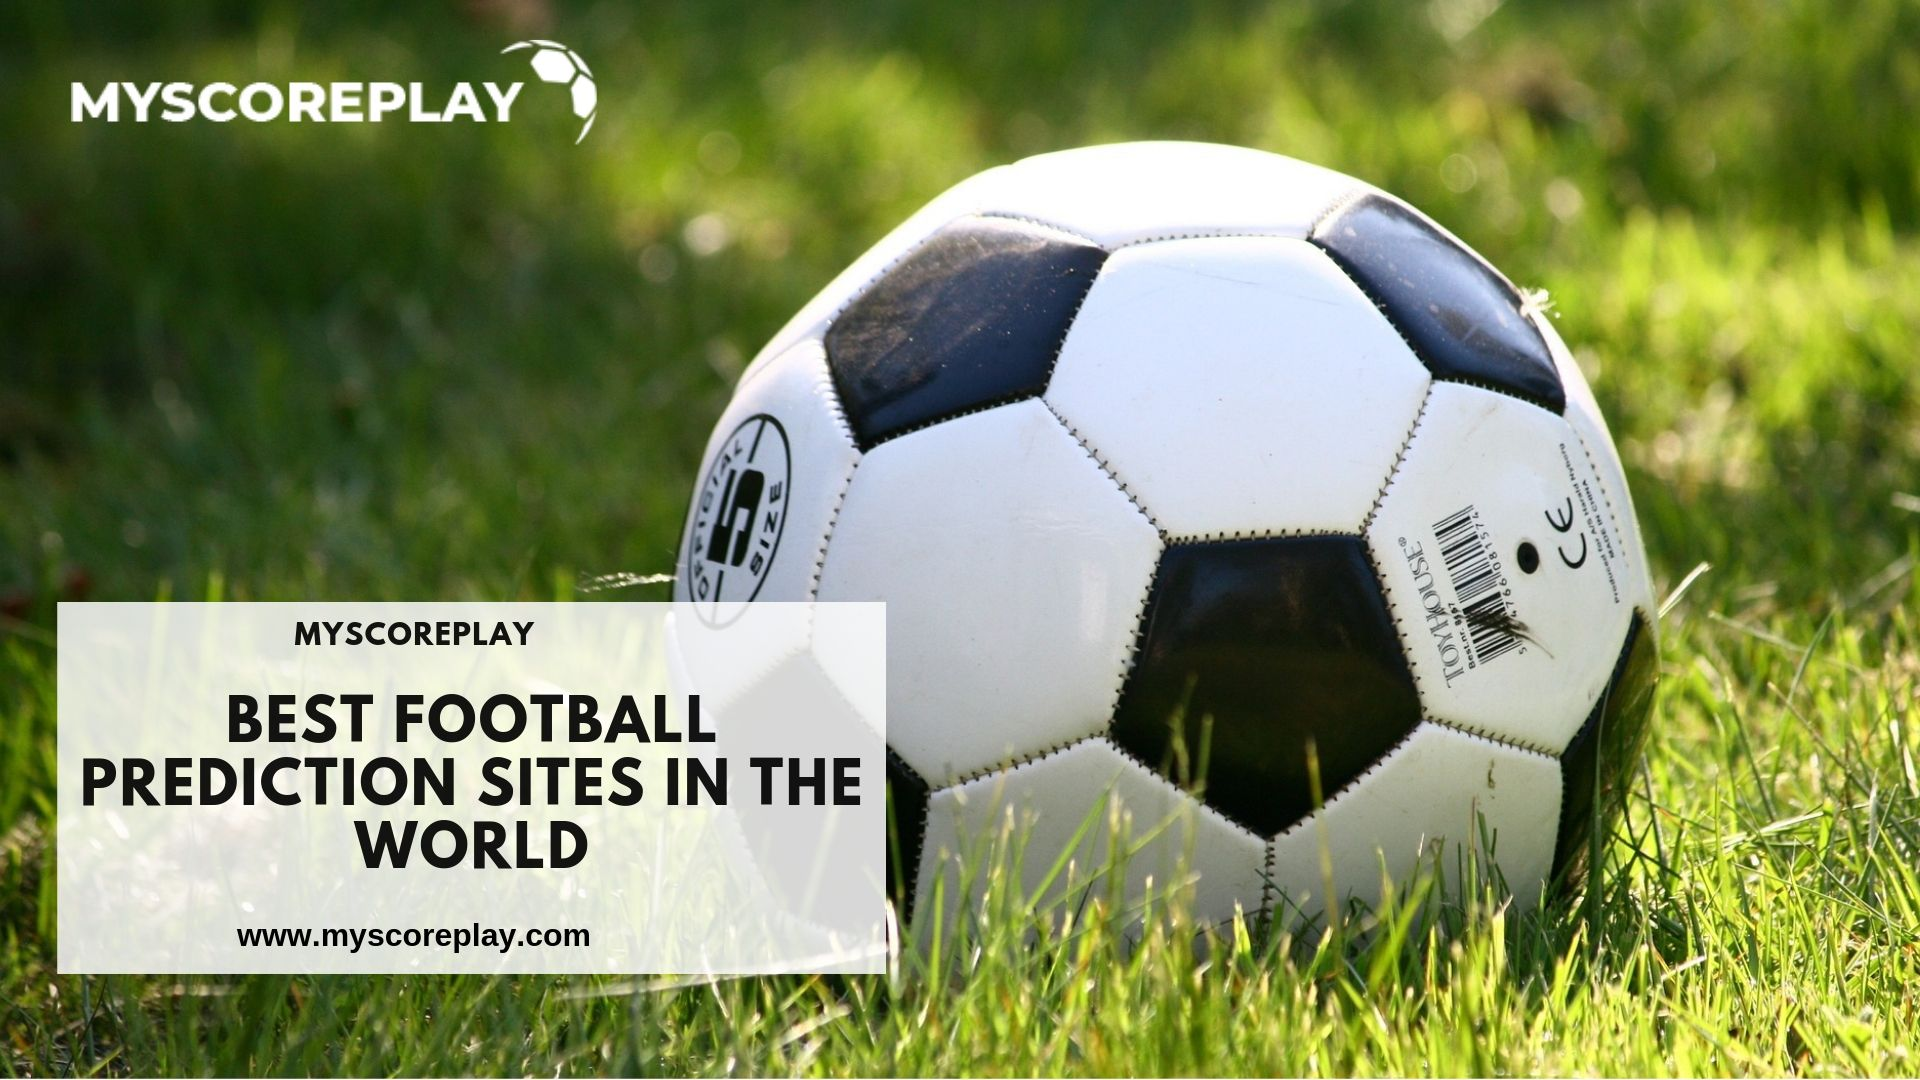 Welcome to Myscoreplay is best football prediction site in the world